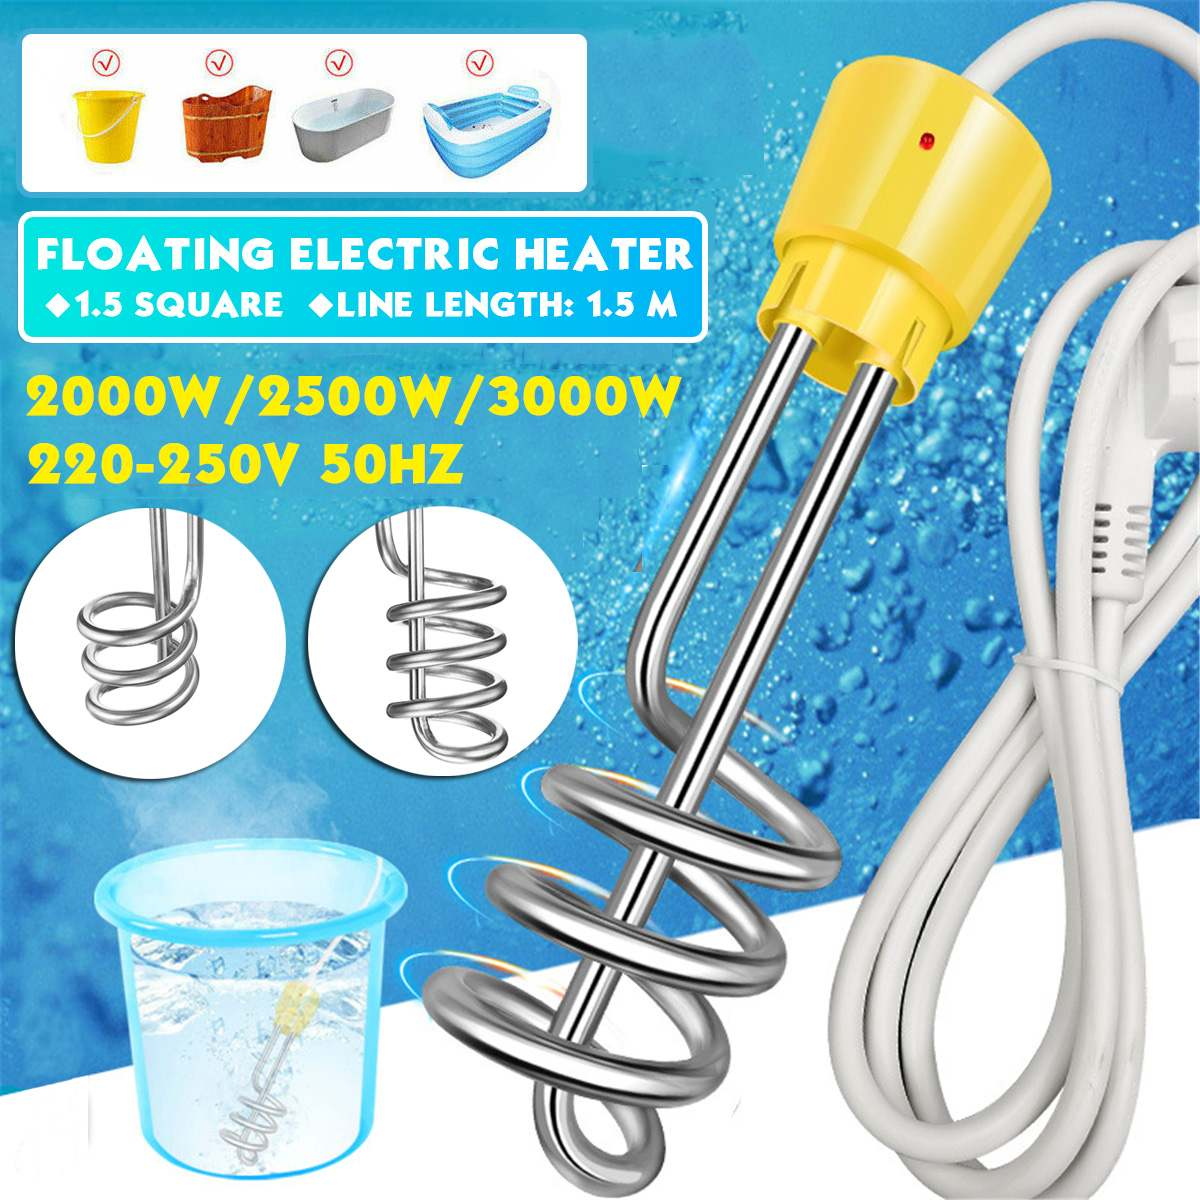 2000W/3000W Electricity Immersion Water Heater Element Boiler Portable Electric Water Heating rods for Inflatable Swimming Pool